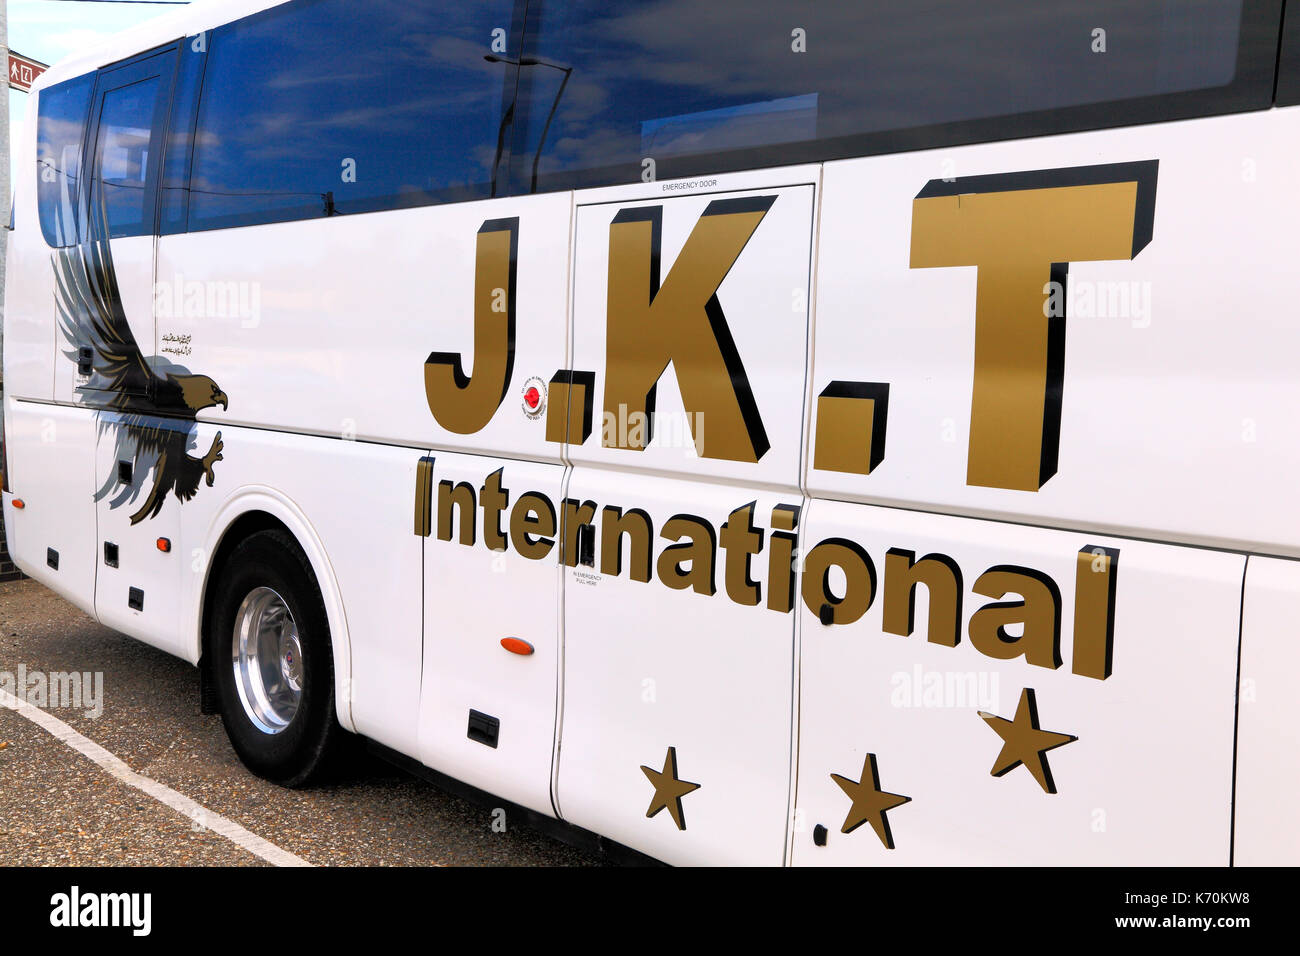 J. K. T., International Travel, entraîneurs, coach, excursions, voyage, excursion, excursions, vacances, vacances, voyage d'entreprise, entreprises, transports, Engla Photo Stock